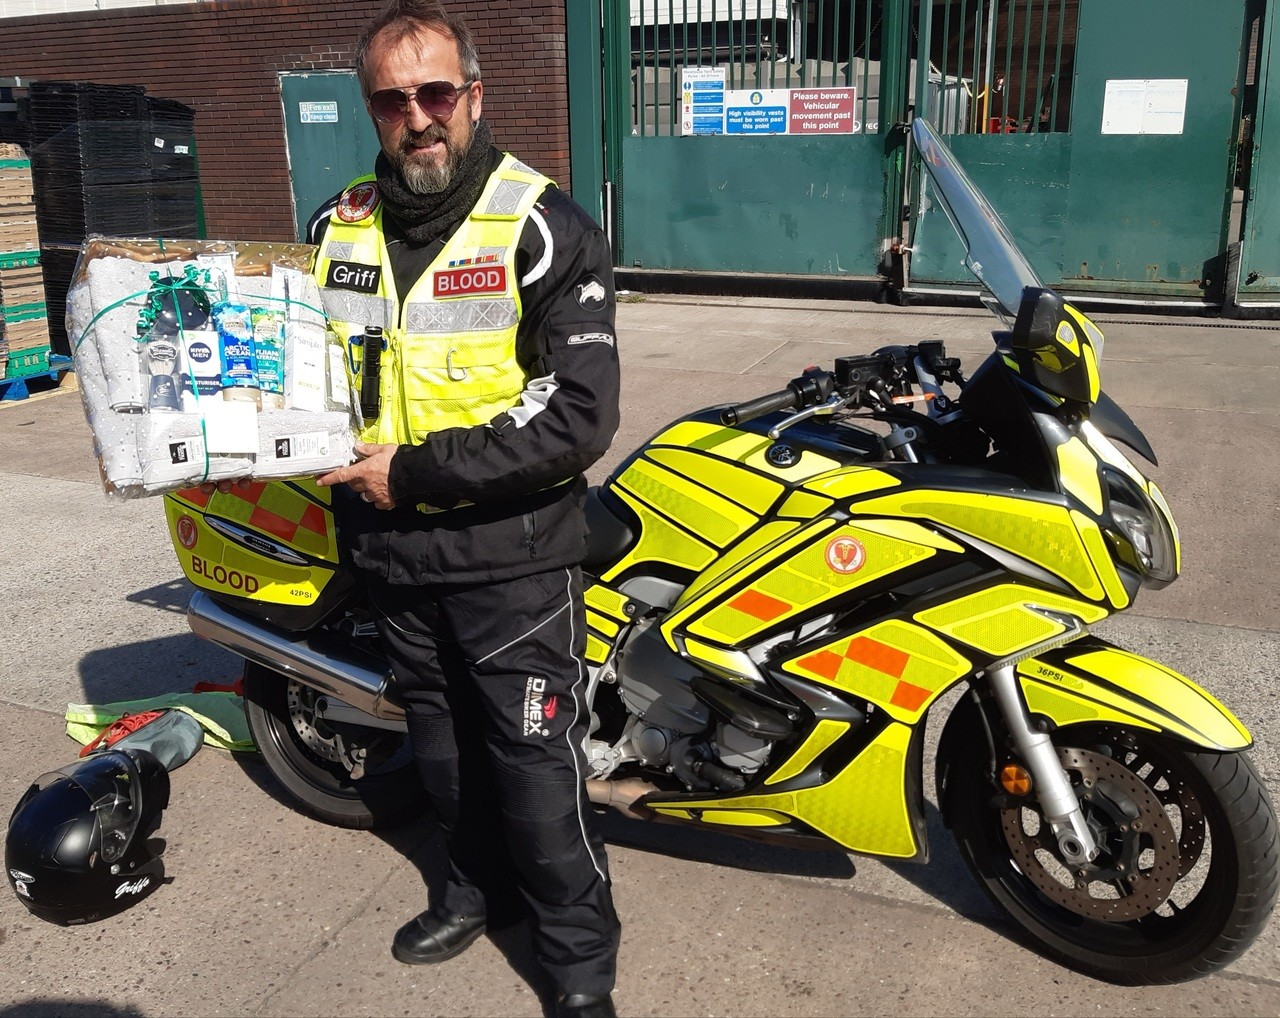 Donation for the Blood Bikes | Asda Wolstanton